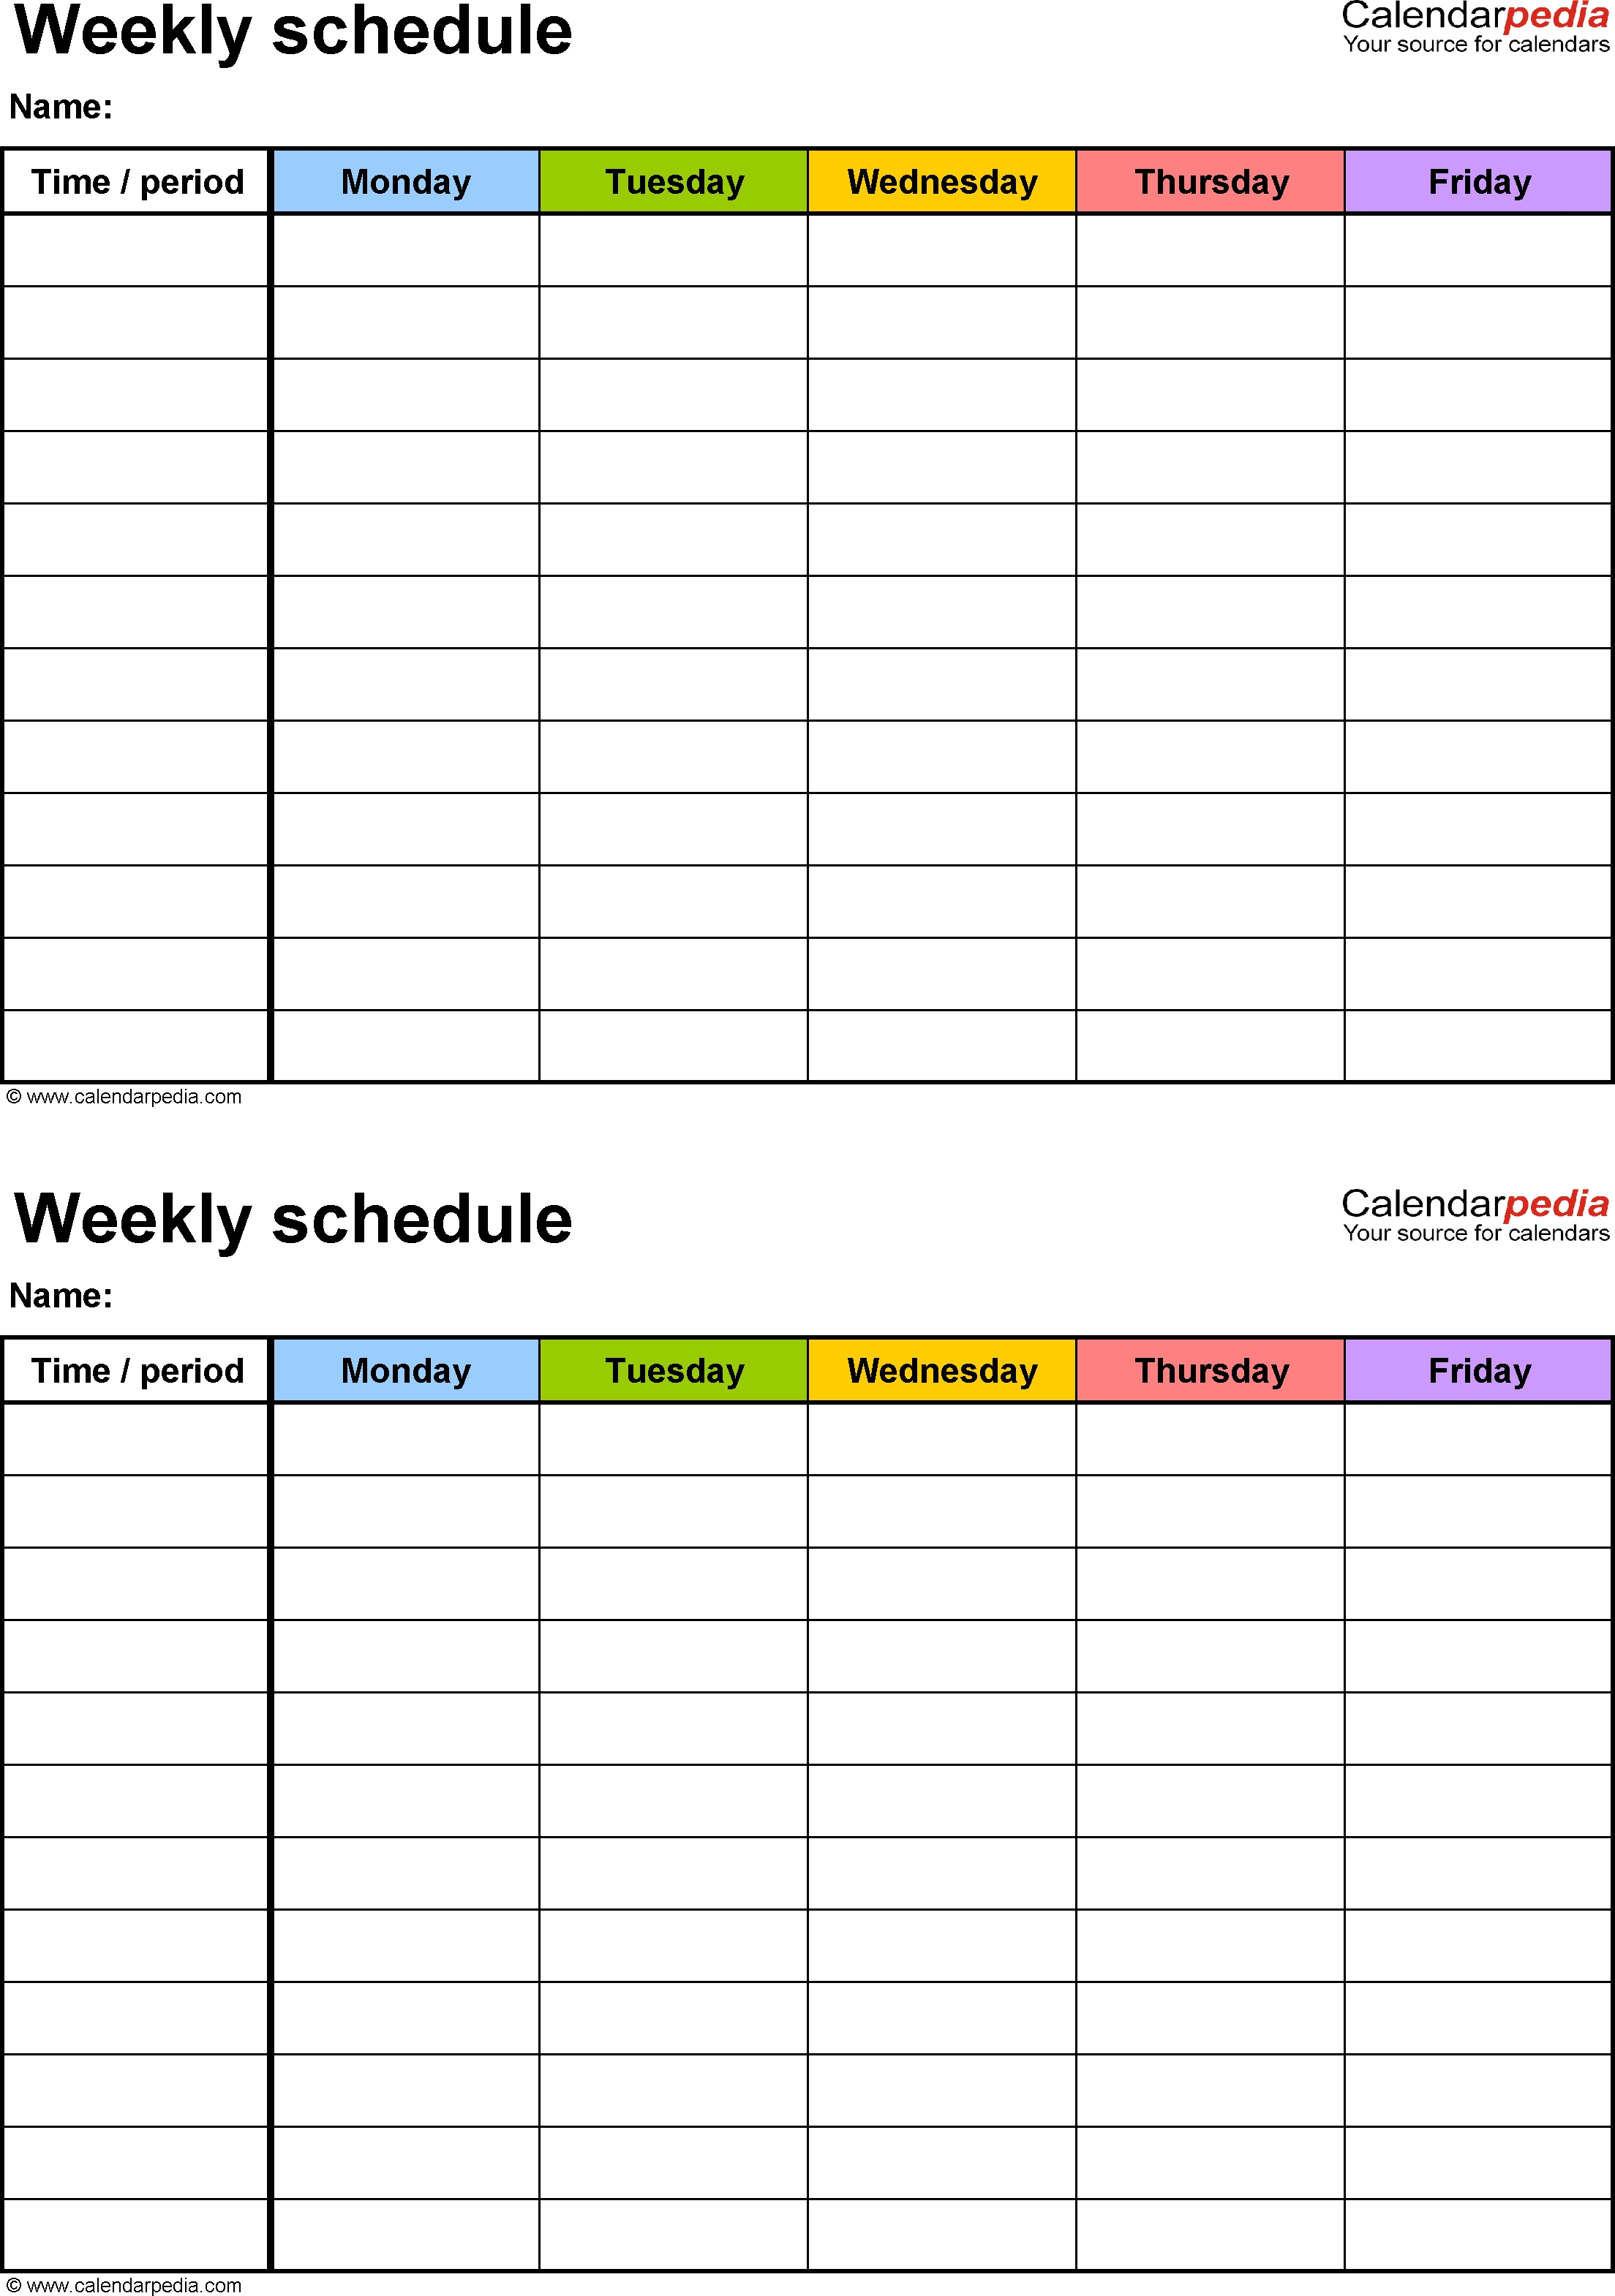 Free Weekly Schedule Templates For Word - 18 Templates with regard to 5 Day Calendar Microsoft Word